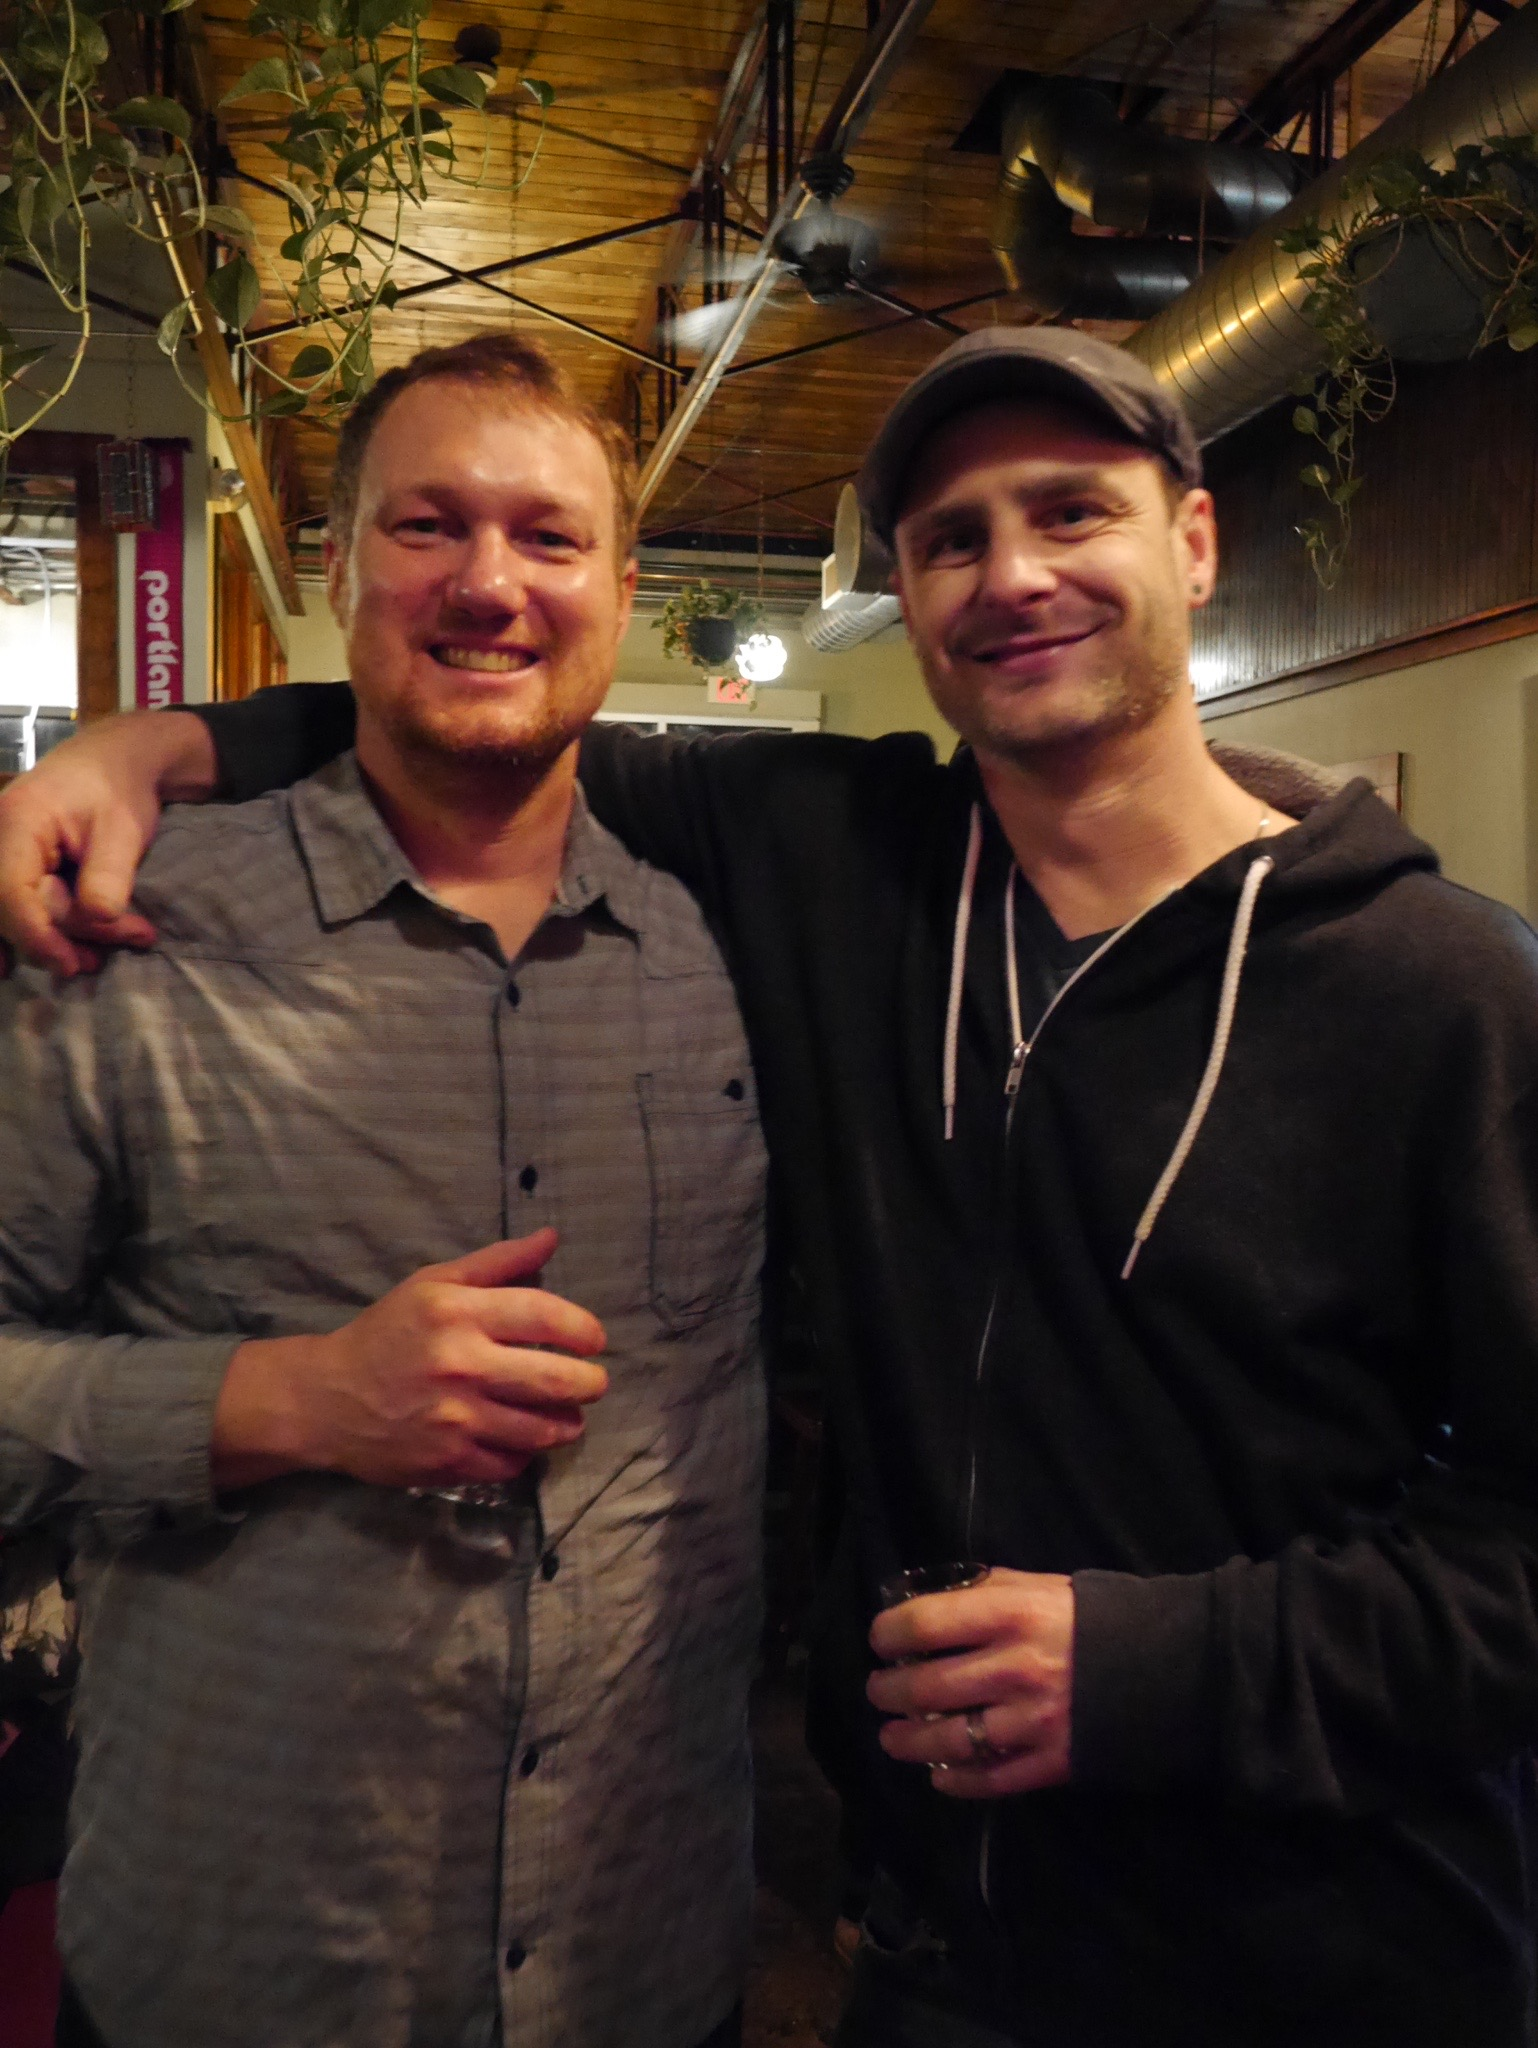 Andy Miller and James Dugan of Great Notion Brewing. (photo by Cat Stelzer)